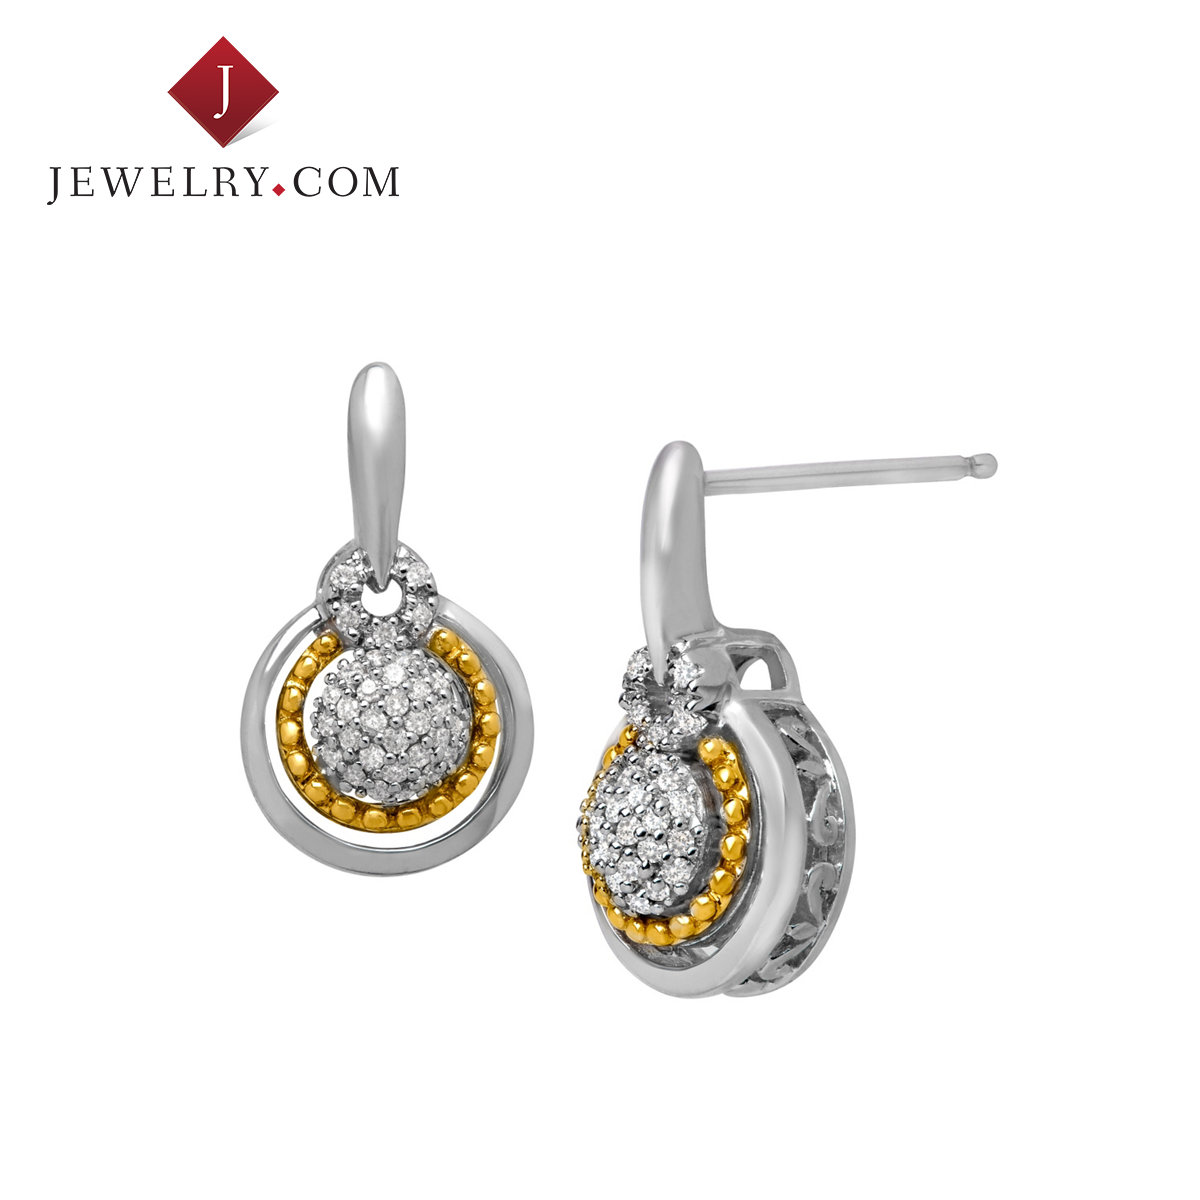 Jewelry.com official ms. shiny fashion 0.2 karat k gold diamond sterling silver earrings temperament models in europe and america